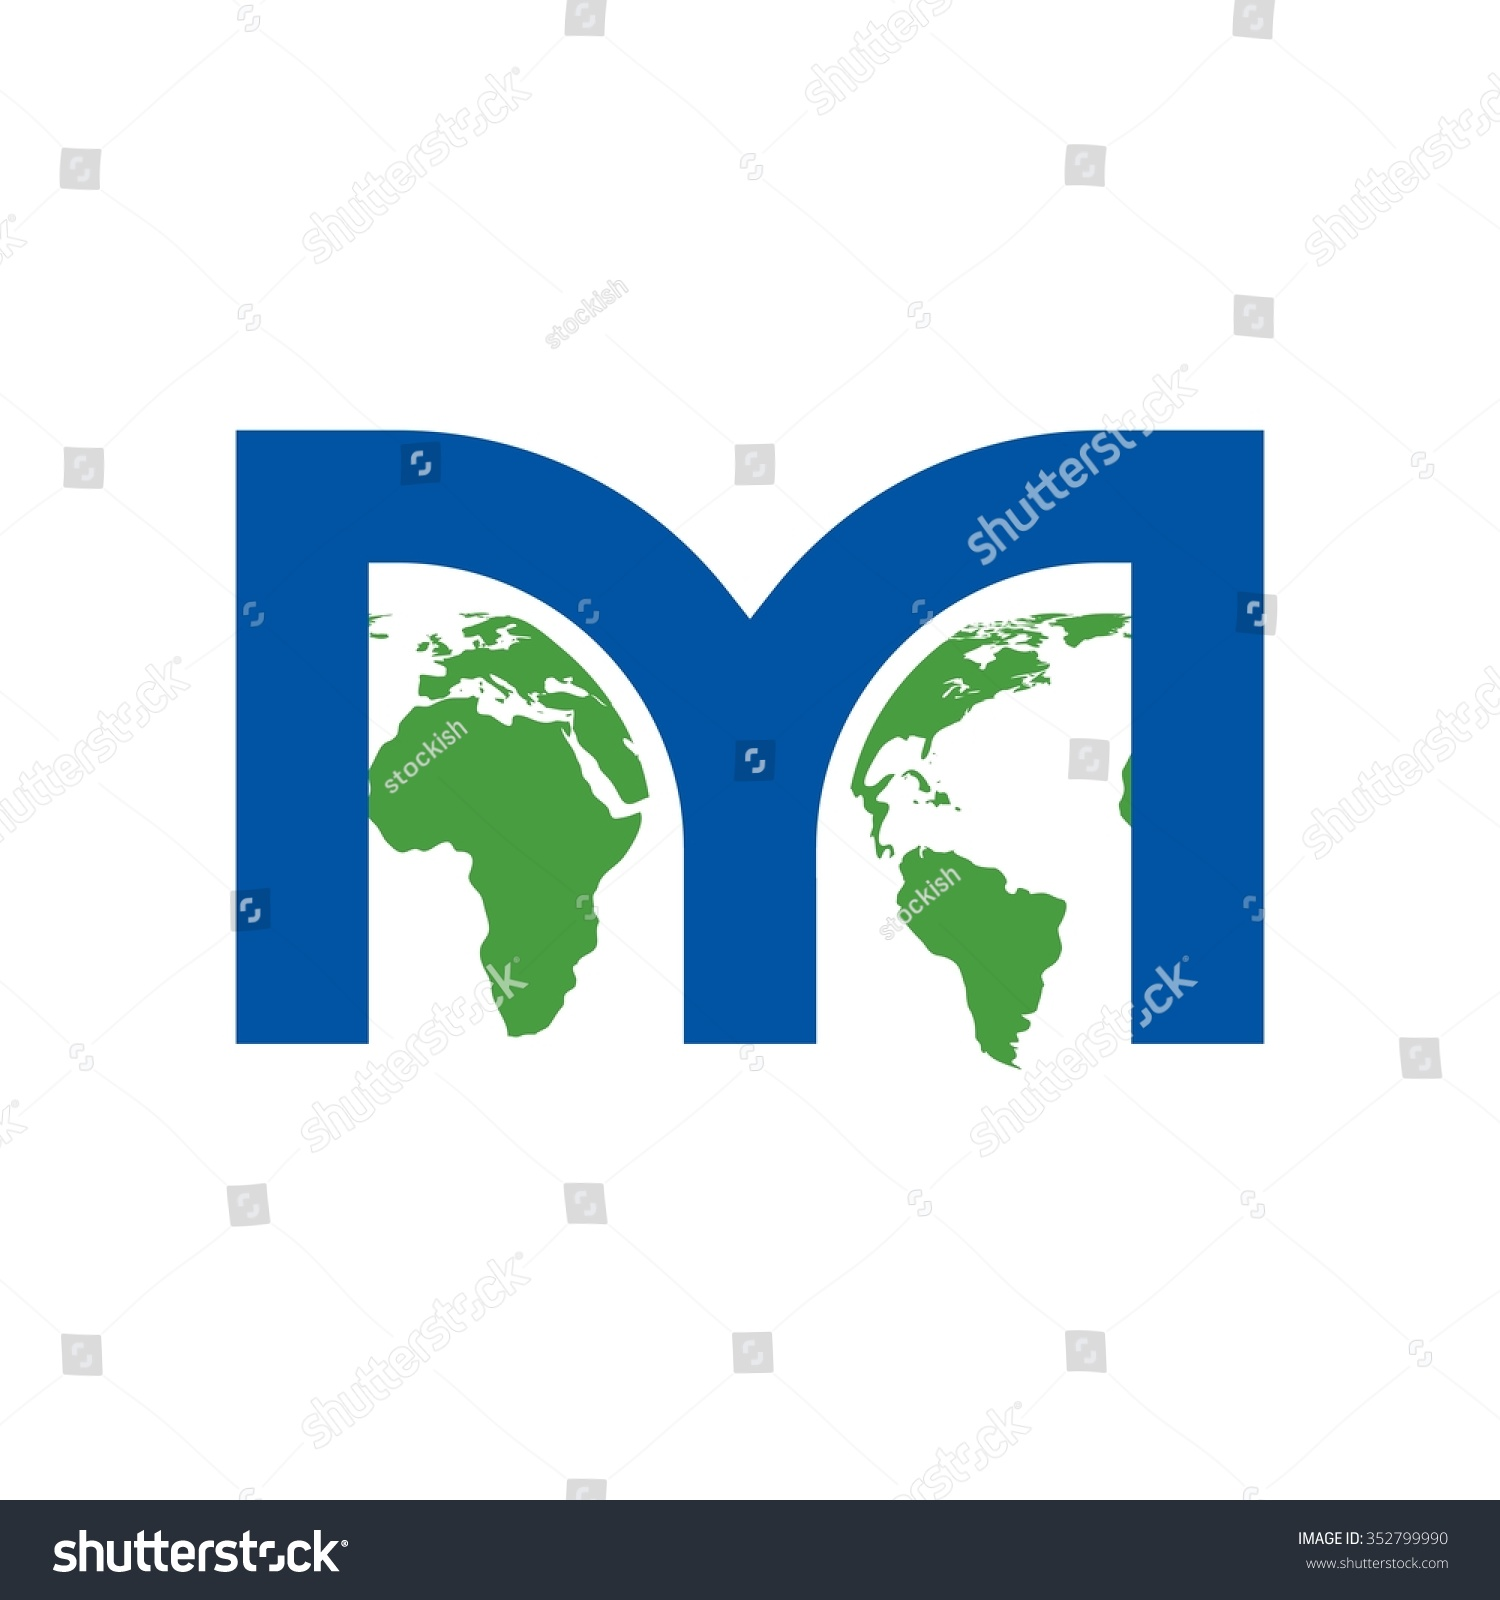 M logo vector map world letter stock vector 352799990 shutterstock m logo vector map of world in the letter m gumiabroncs Images